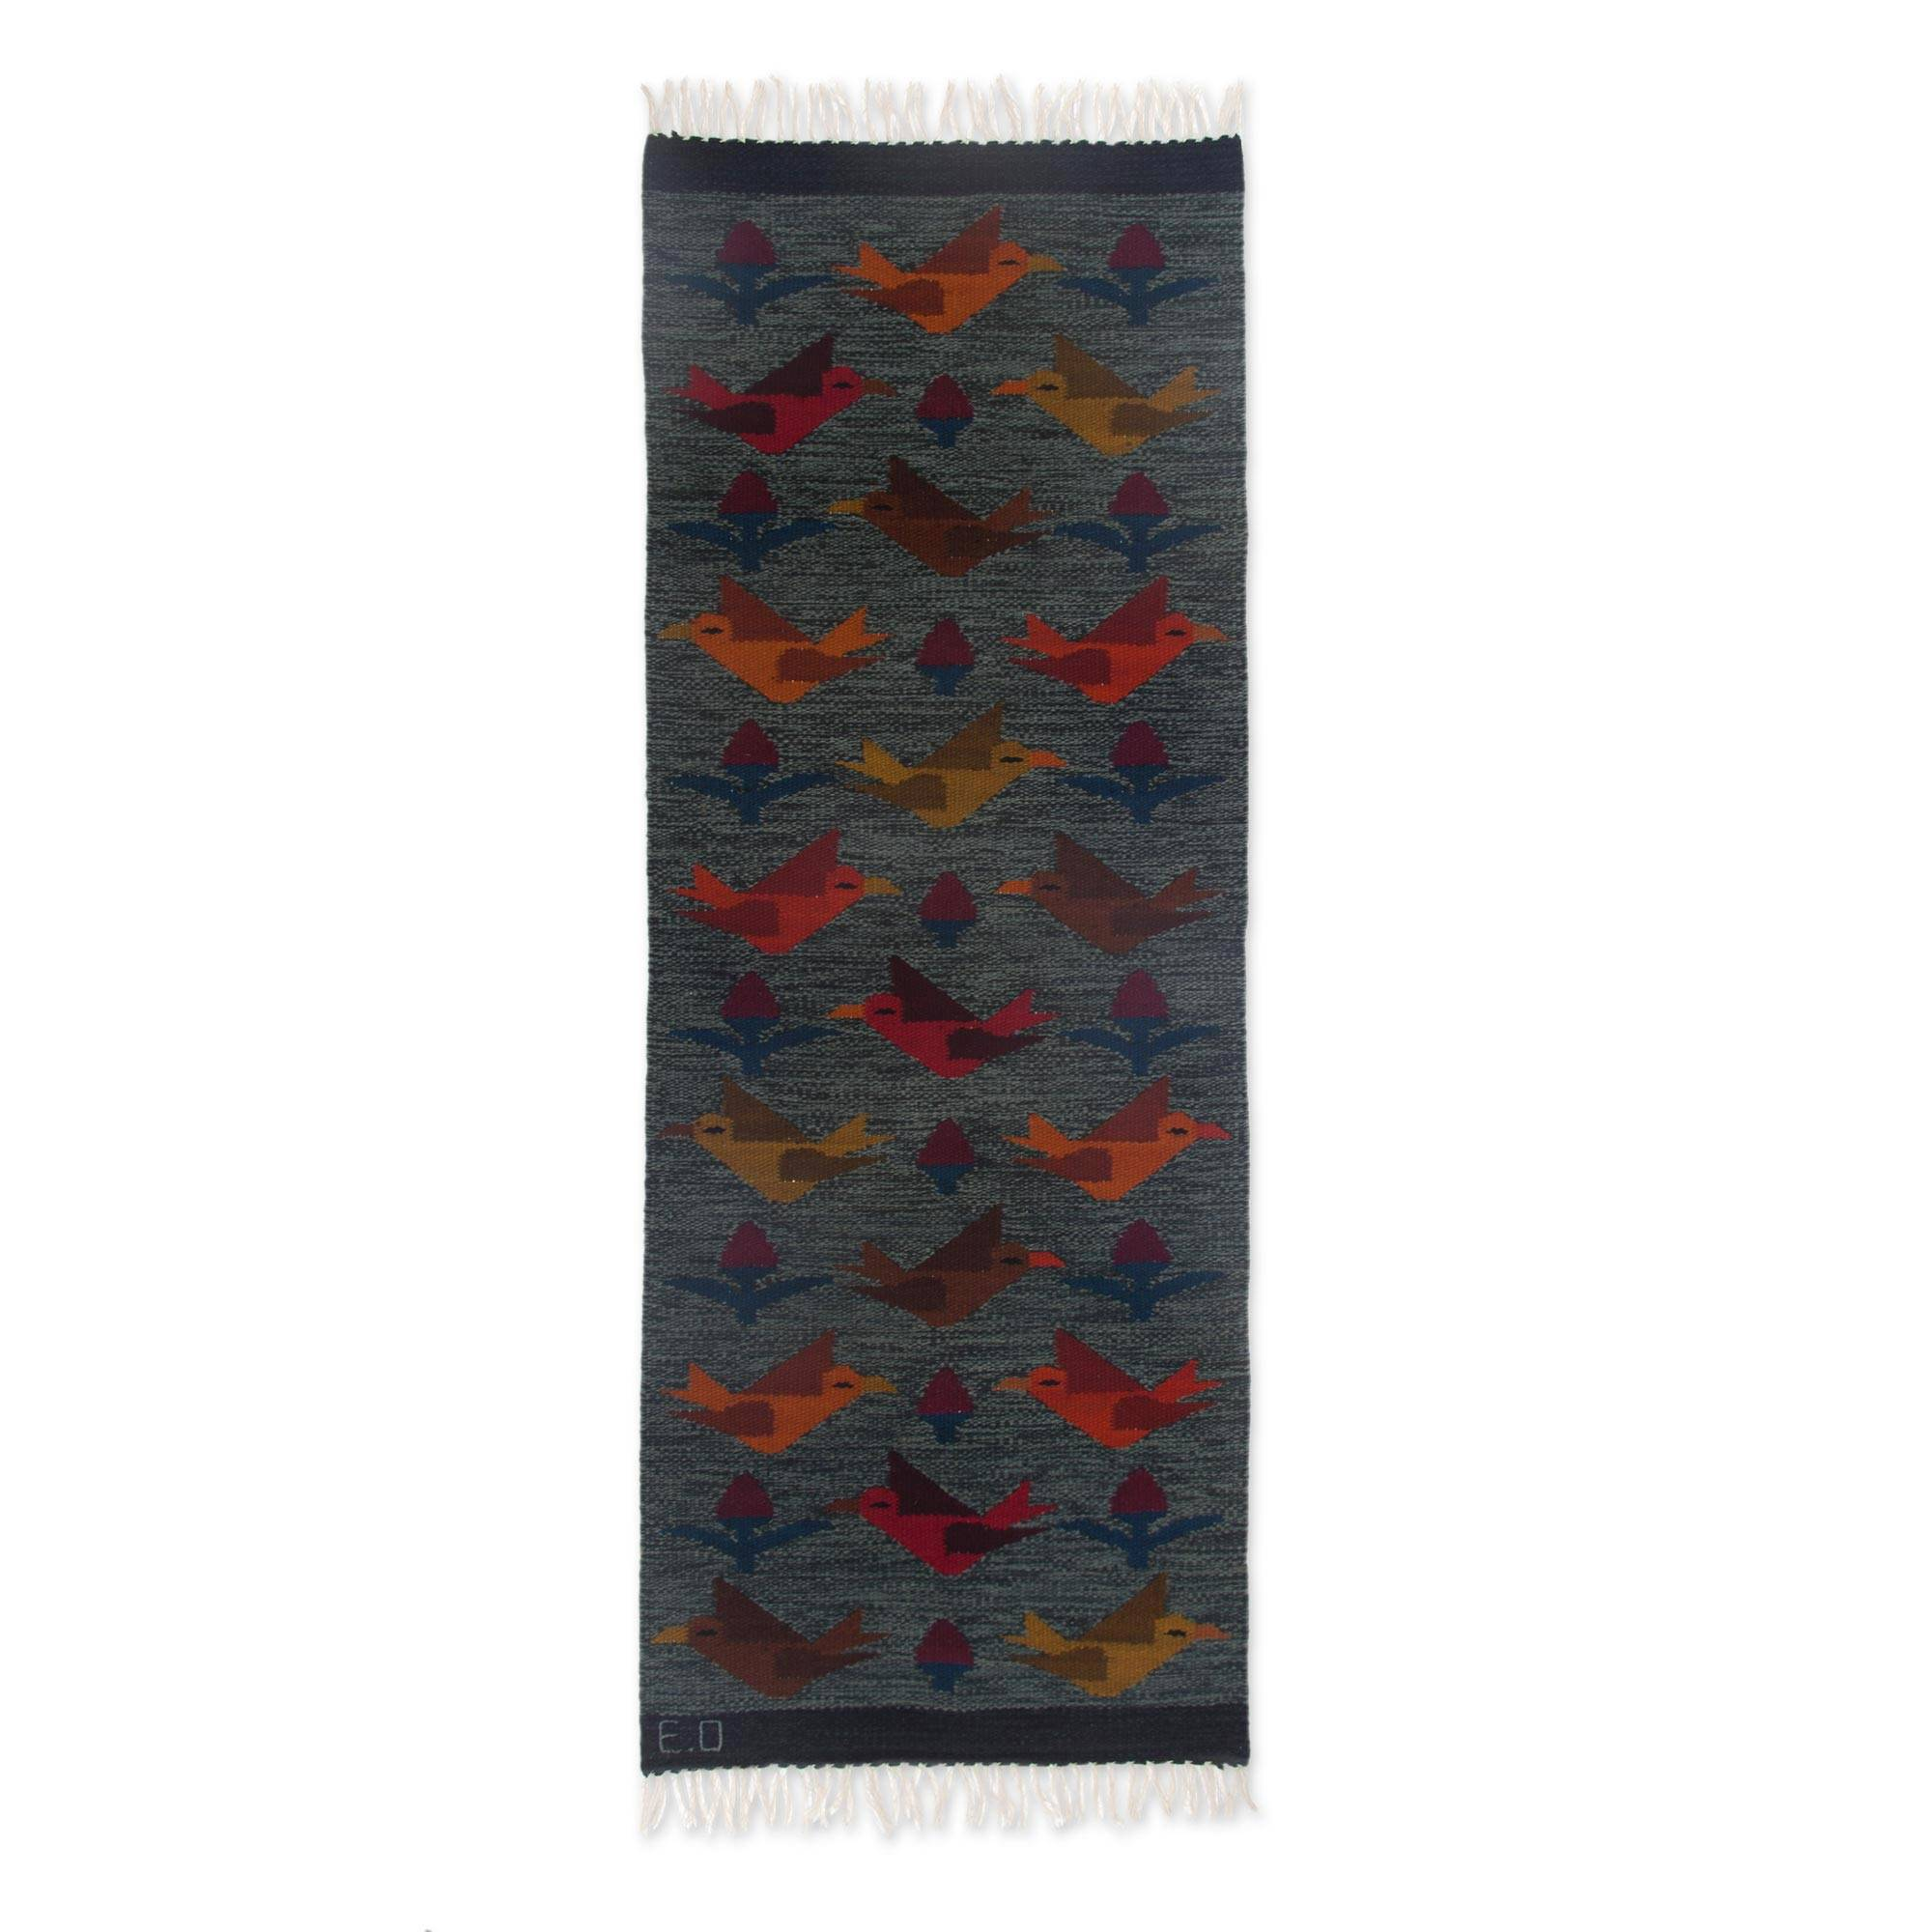 Unicef Market Handwoven Bird Theme Peruvian Blue Wool